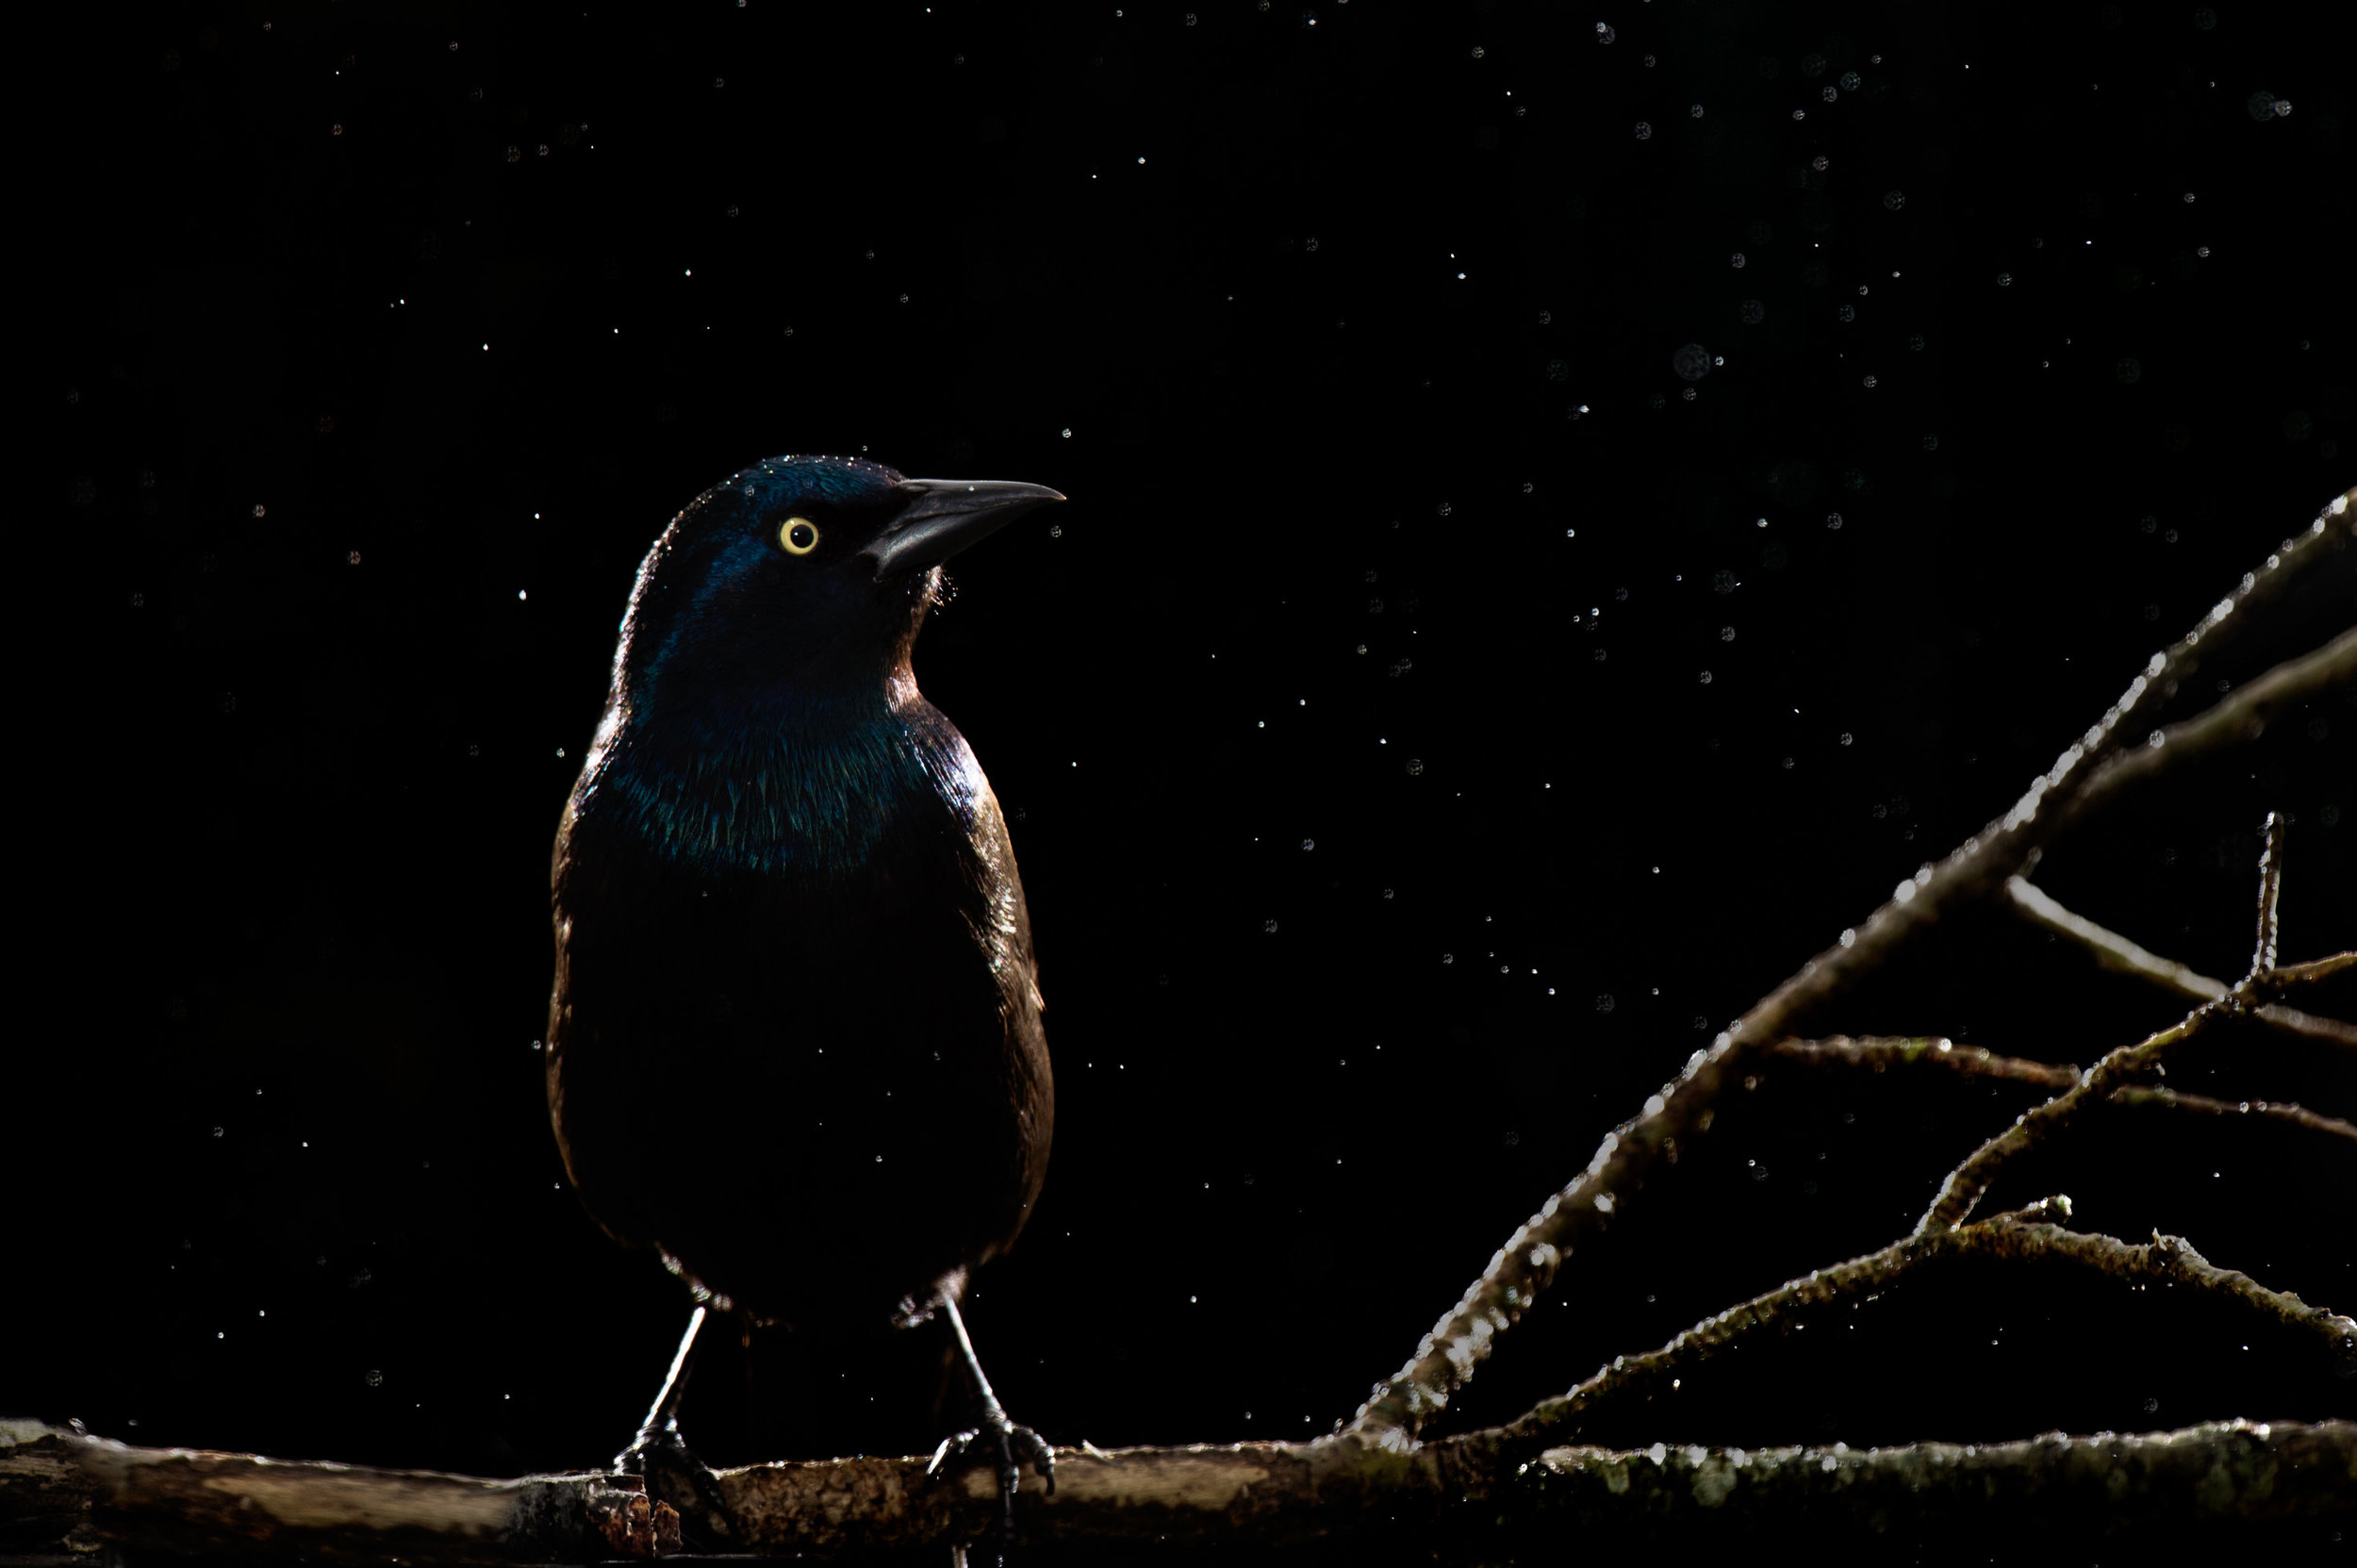 While I don't normally find Common Grackles to be the most beautiful subjects I thought this dramatic lighting really worked well for this individual, the light rain also added a little something to the shot.